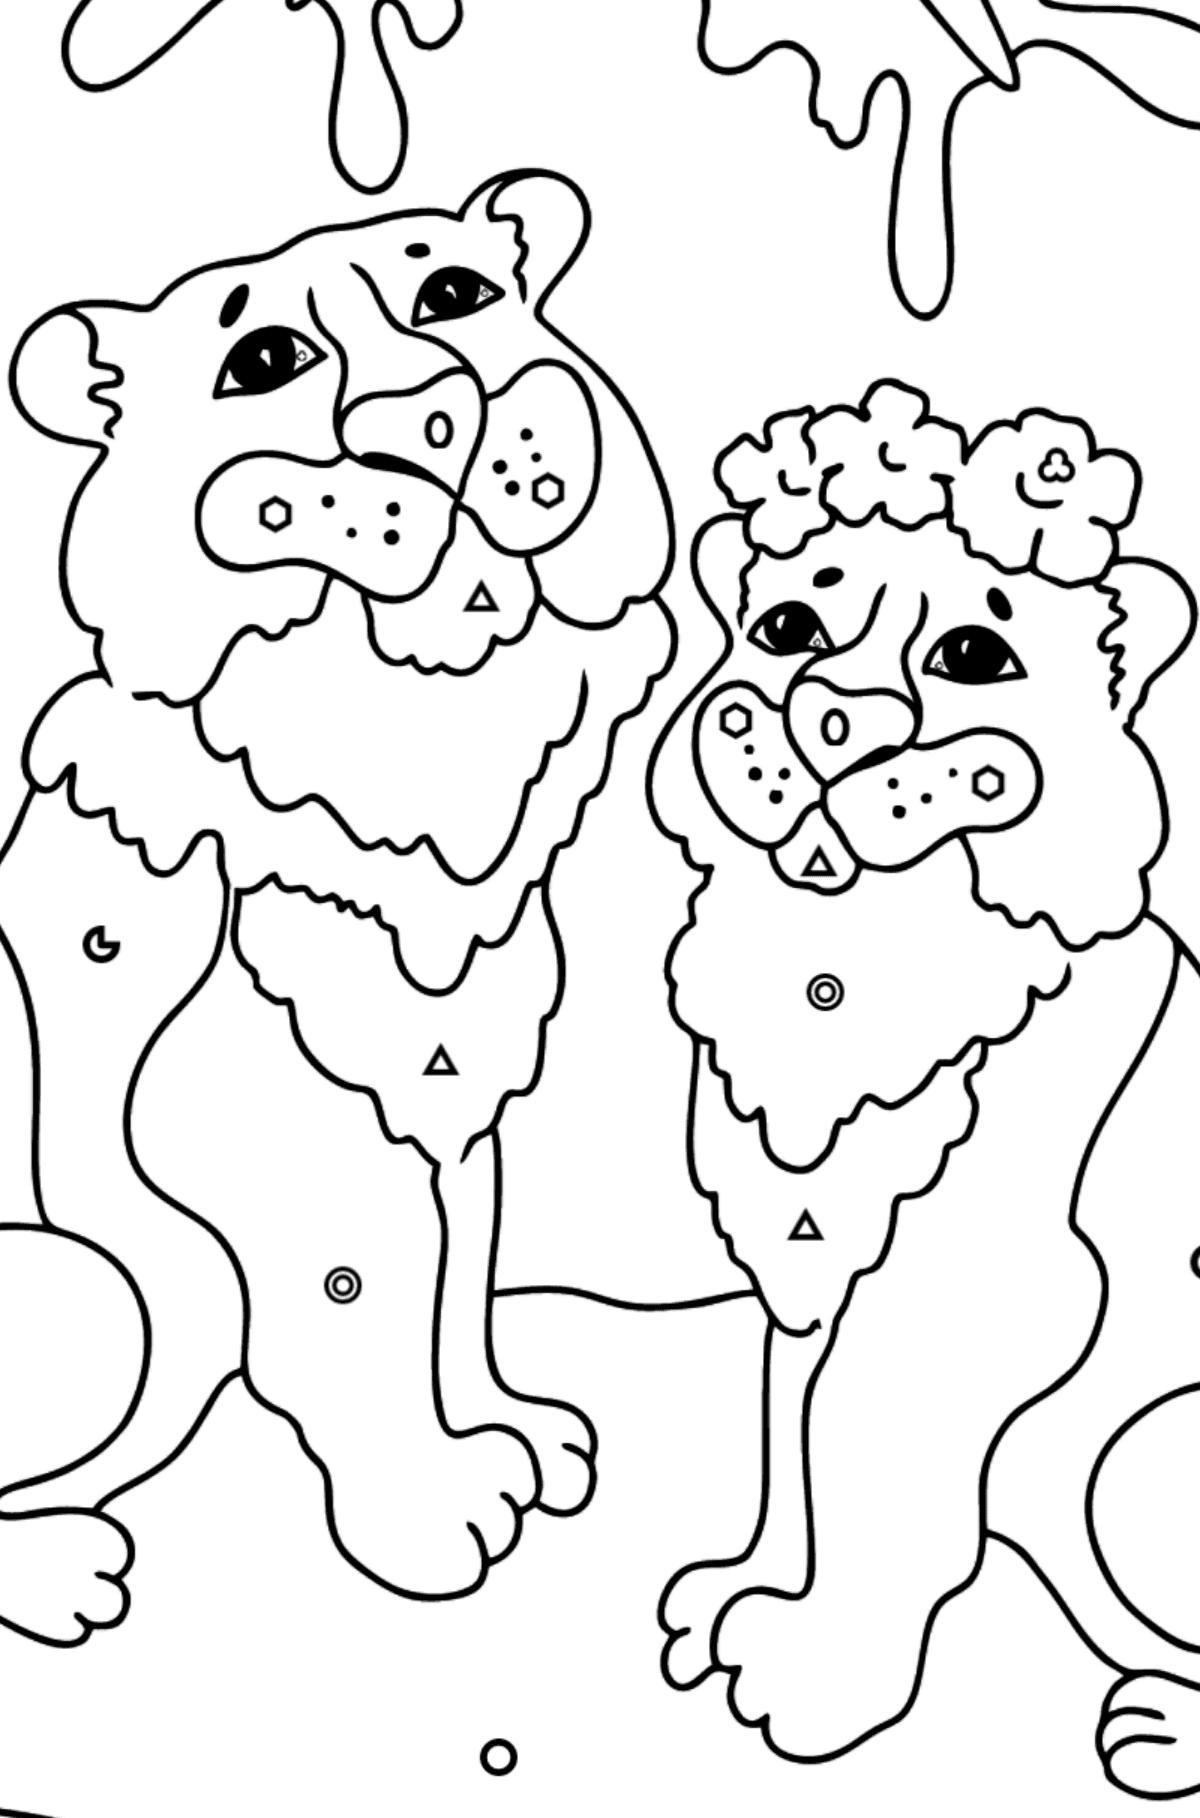 Coloring Page - Tigers with Butterflies - Coloring by Geometric Shapes for Kids